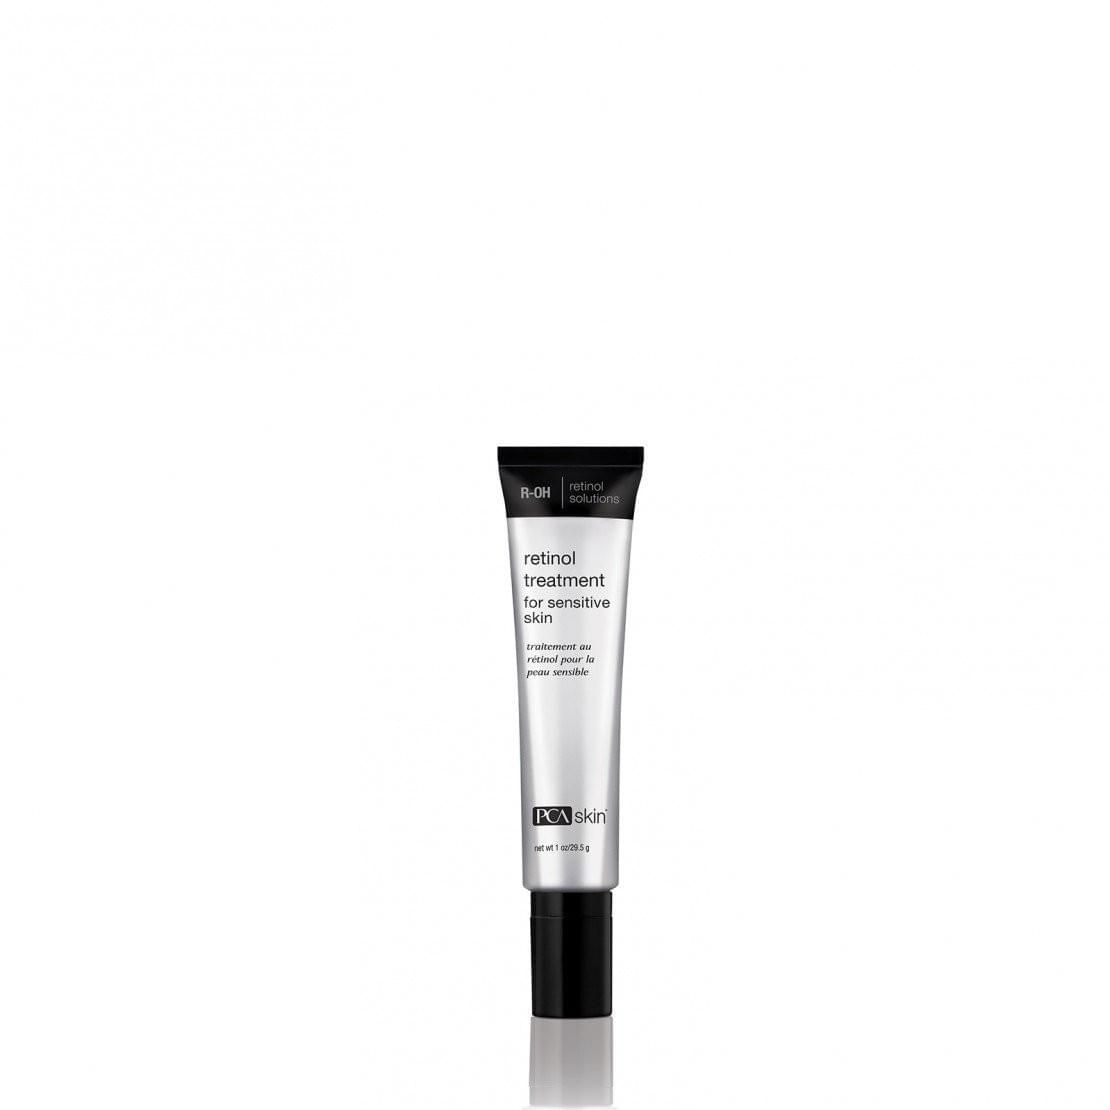 INTENSIVE RETINOL TREATMENT FOR SENSITIVE SKIN.